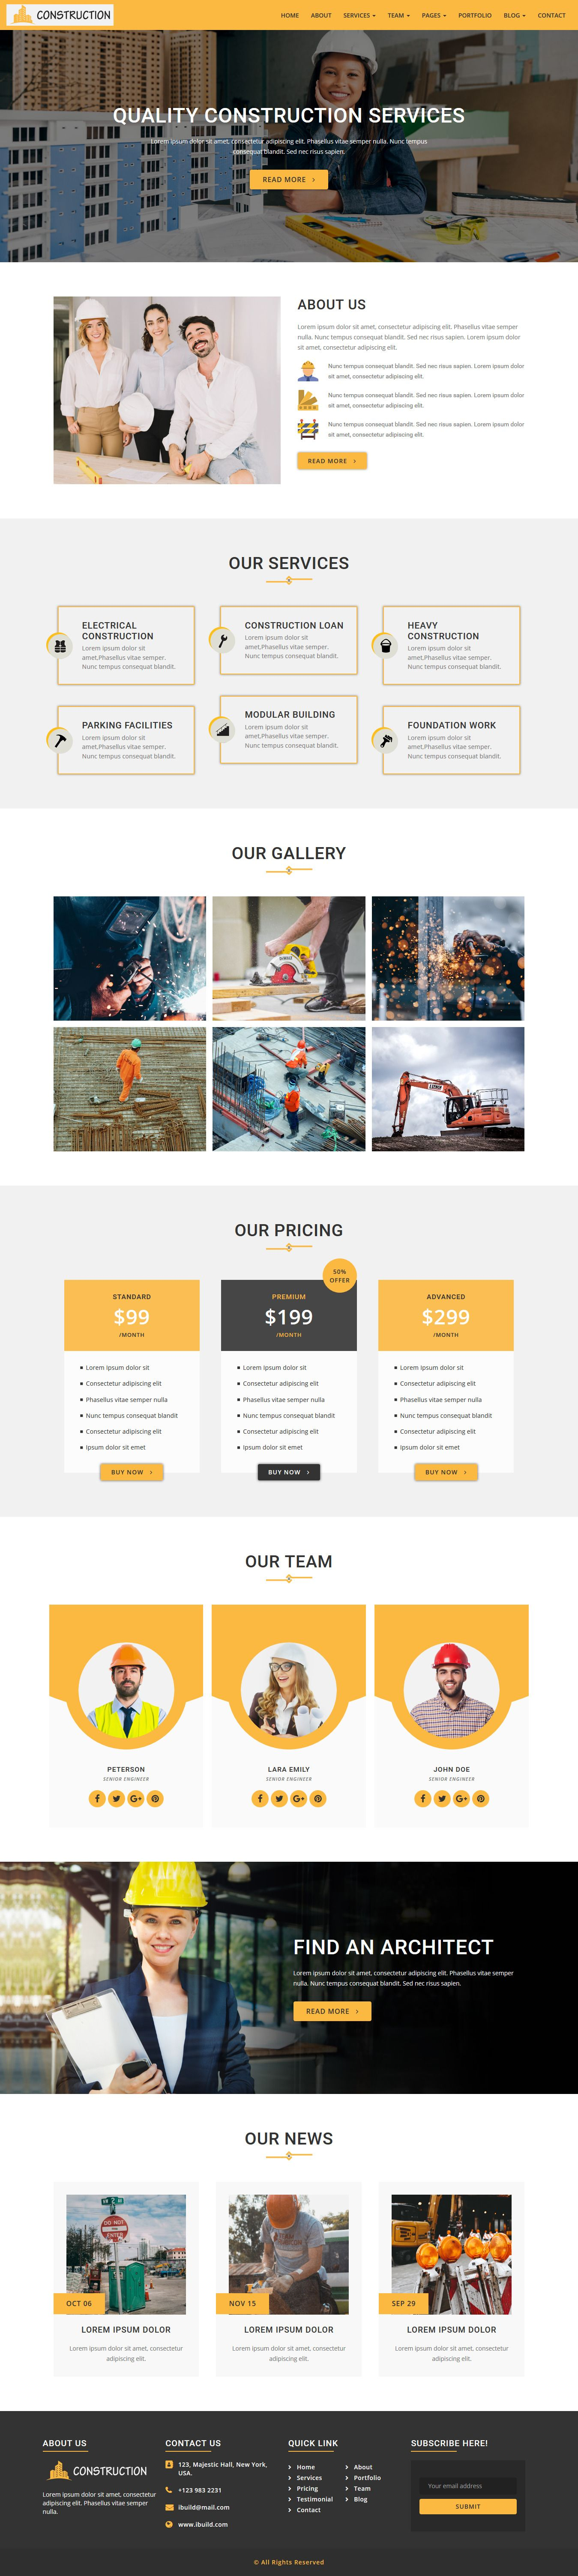 iConstruction - WordPress Theme Screenshot 1